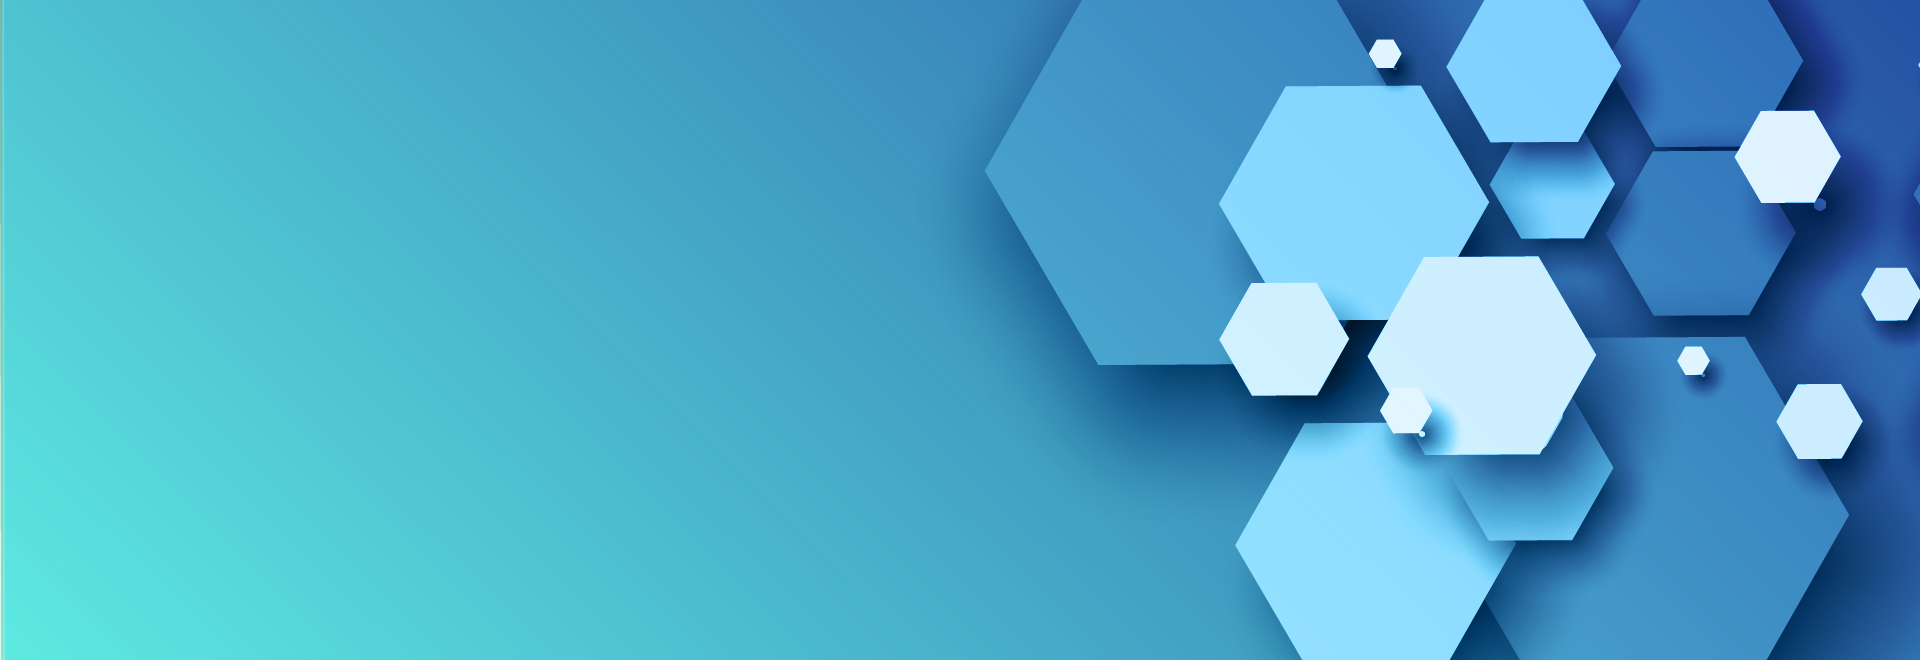 blue blog banner with white and blue hexagonal design on the right